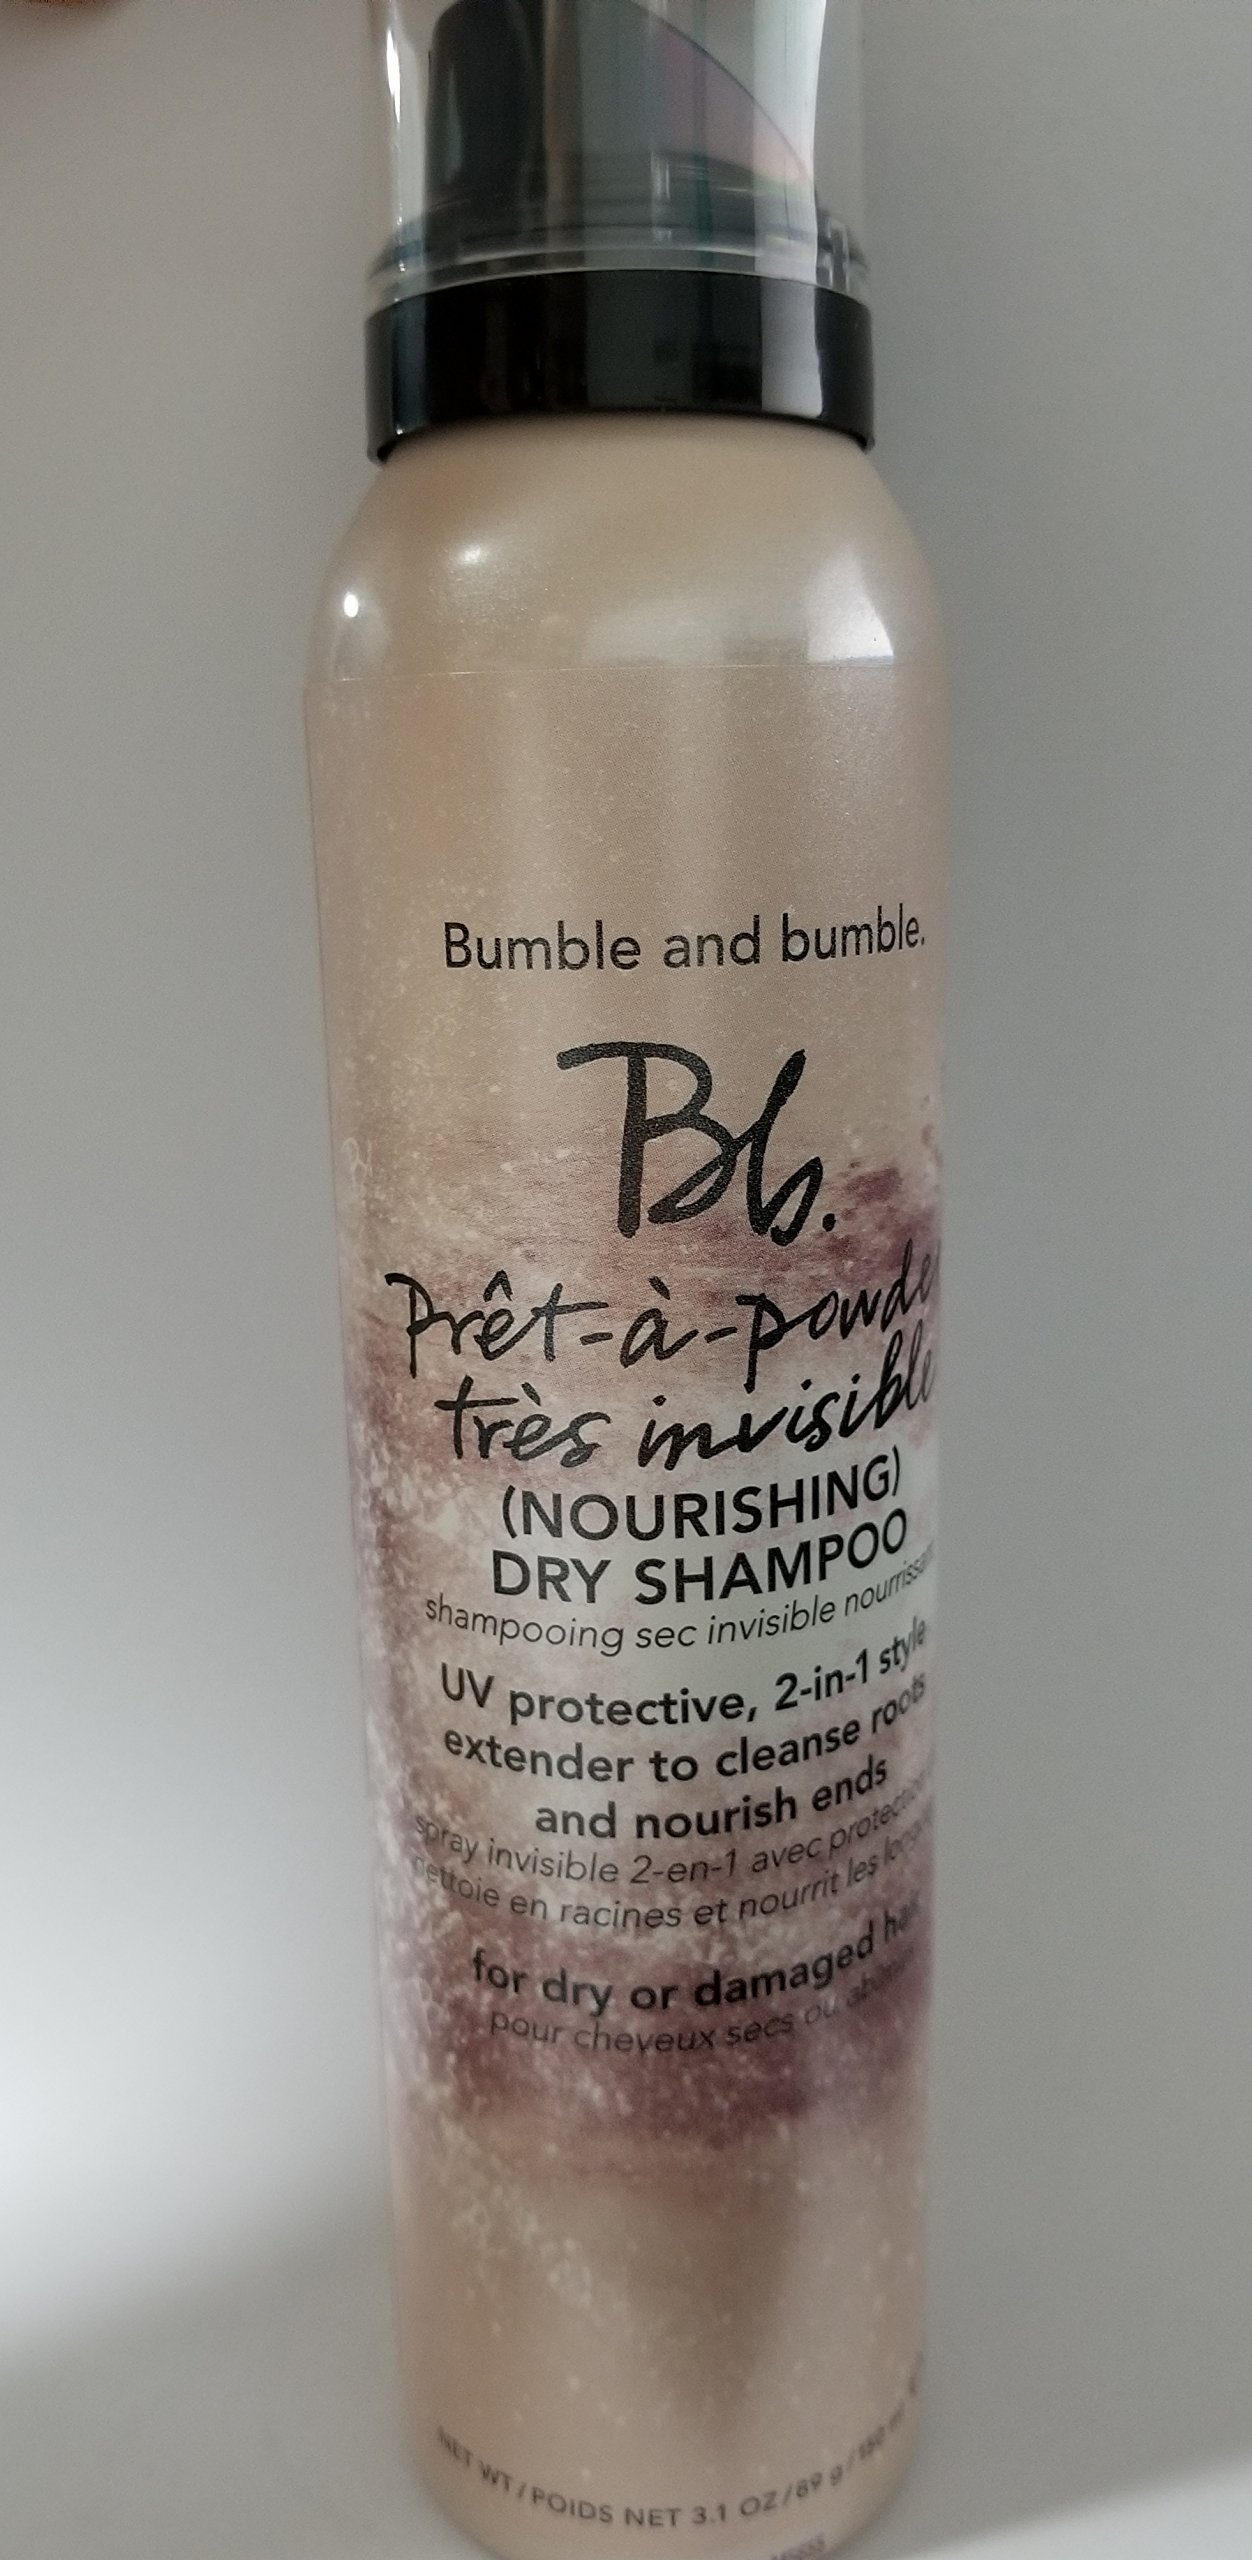 Dry Shampoos by Bumble & bumble Pret-a-powder Tres Invisible Nourishing Dry Shampoo 150g